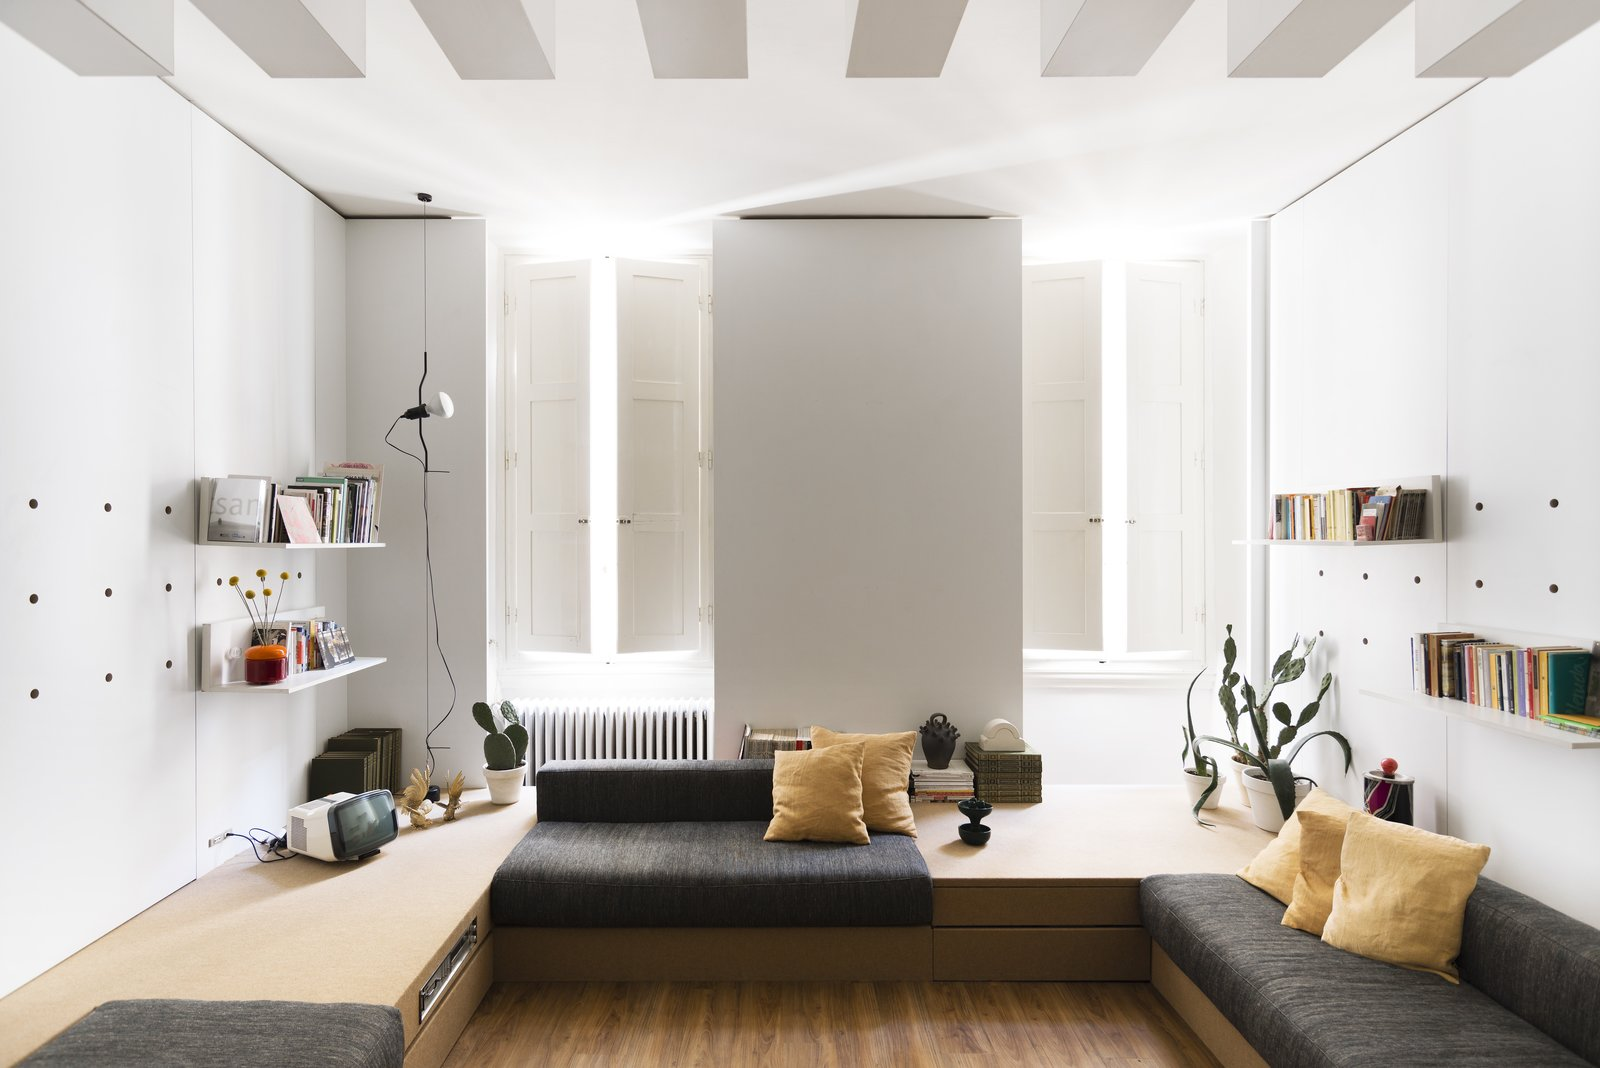 Living Room, Sofa, Medium Hardwood Floor, Bench, Shelves, and Pendant Lighting In the main living area are built-in platforms with storage spaces and niches that can be filled with padding to create sofas or beds.   Best Photos from A Tiny Florence Flat Is Reborn as an Architect's Live/Work Space